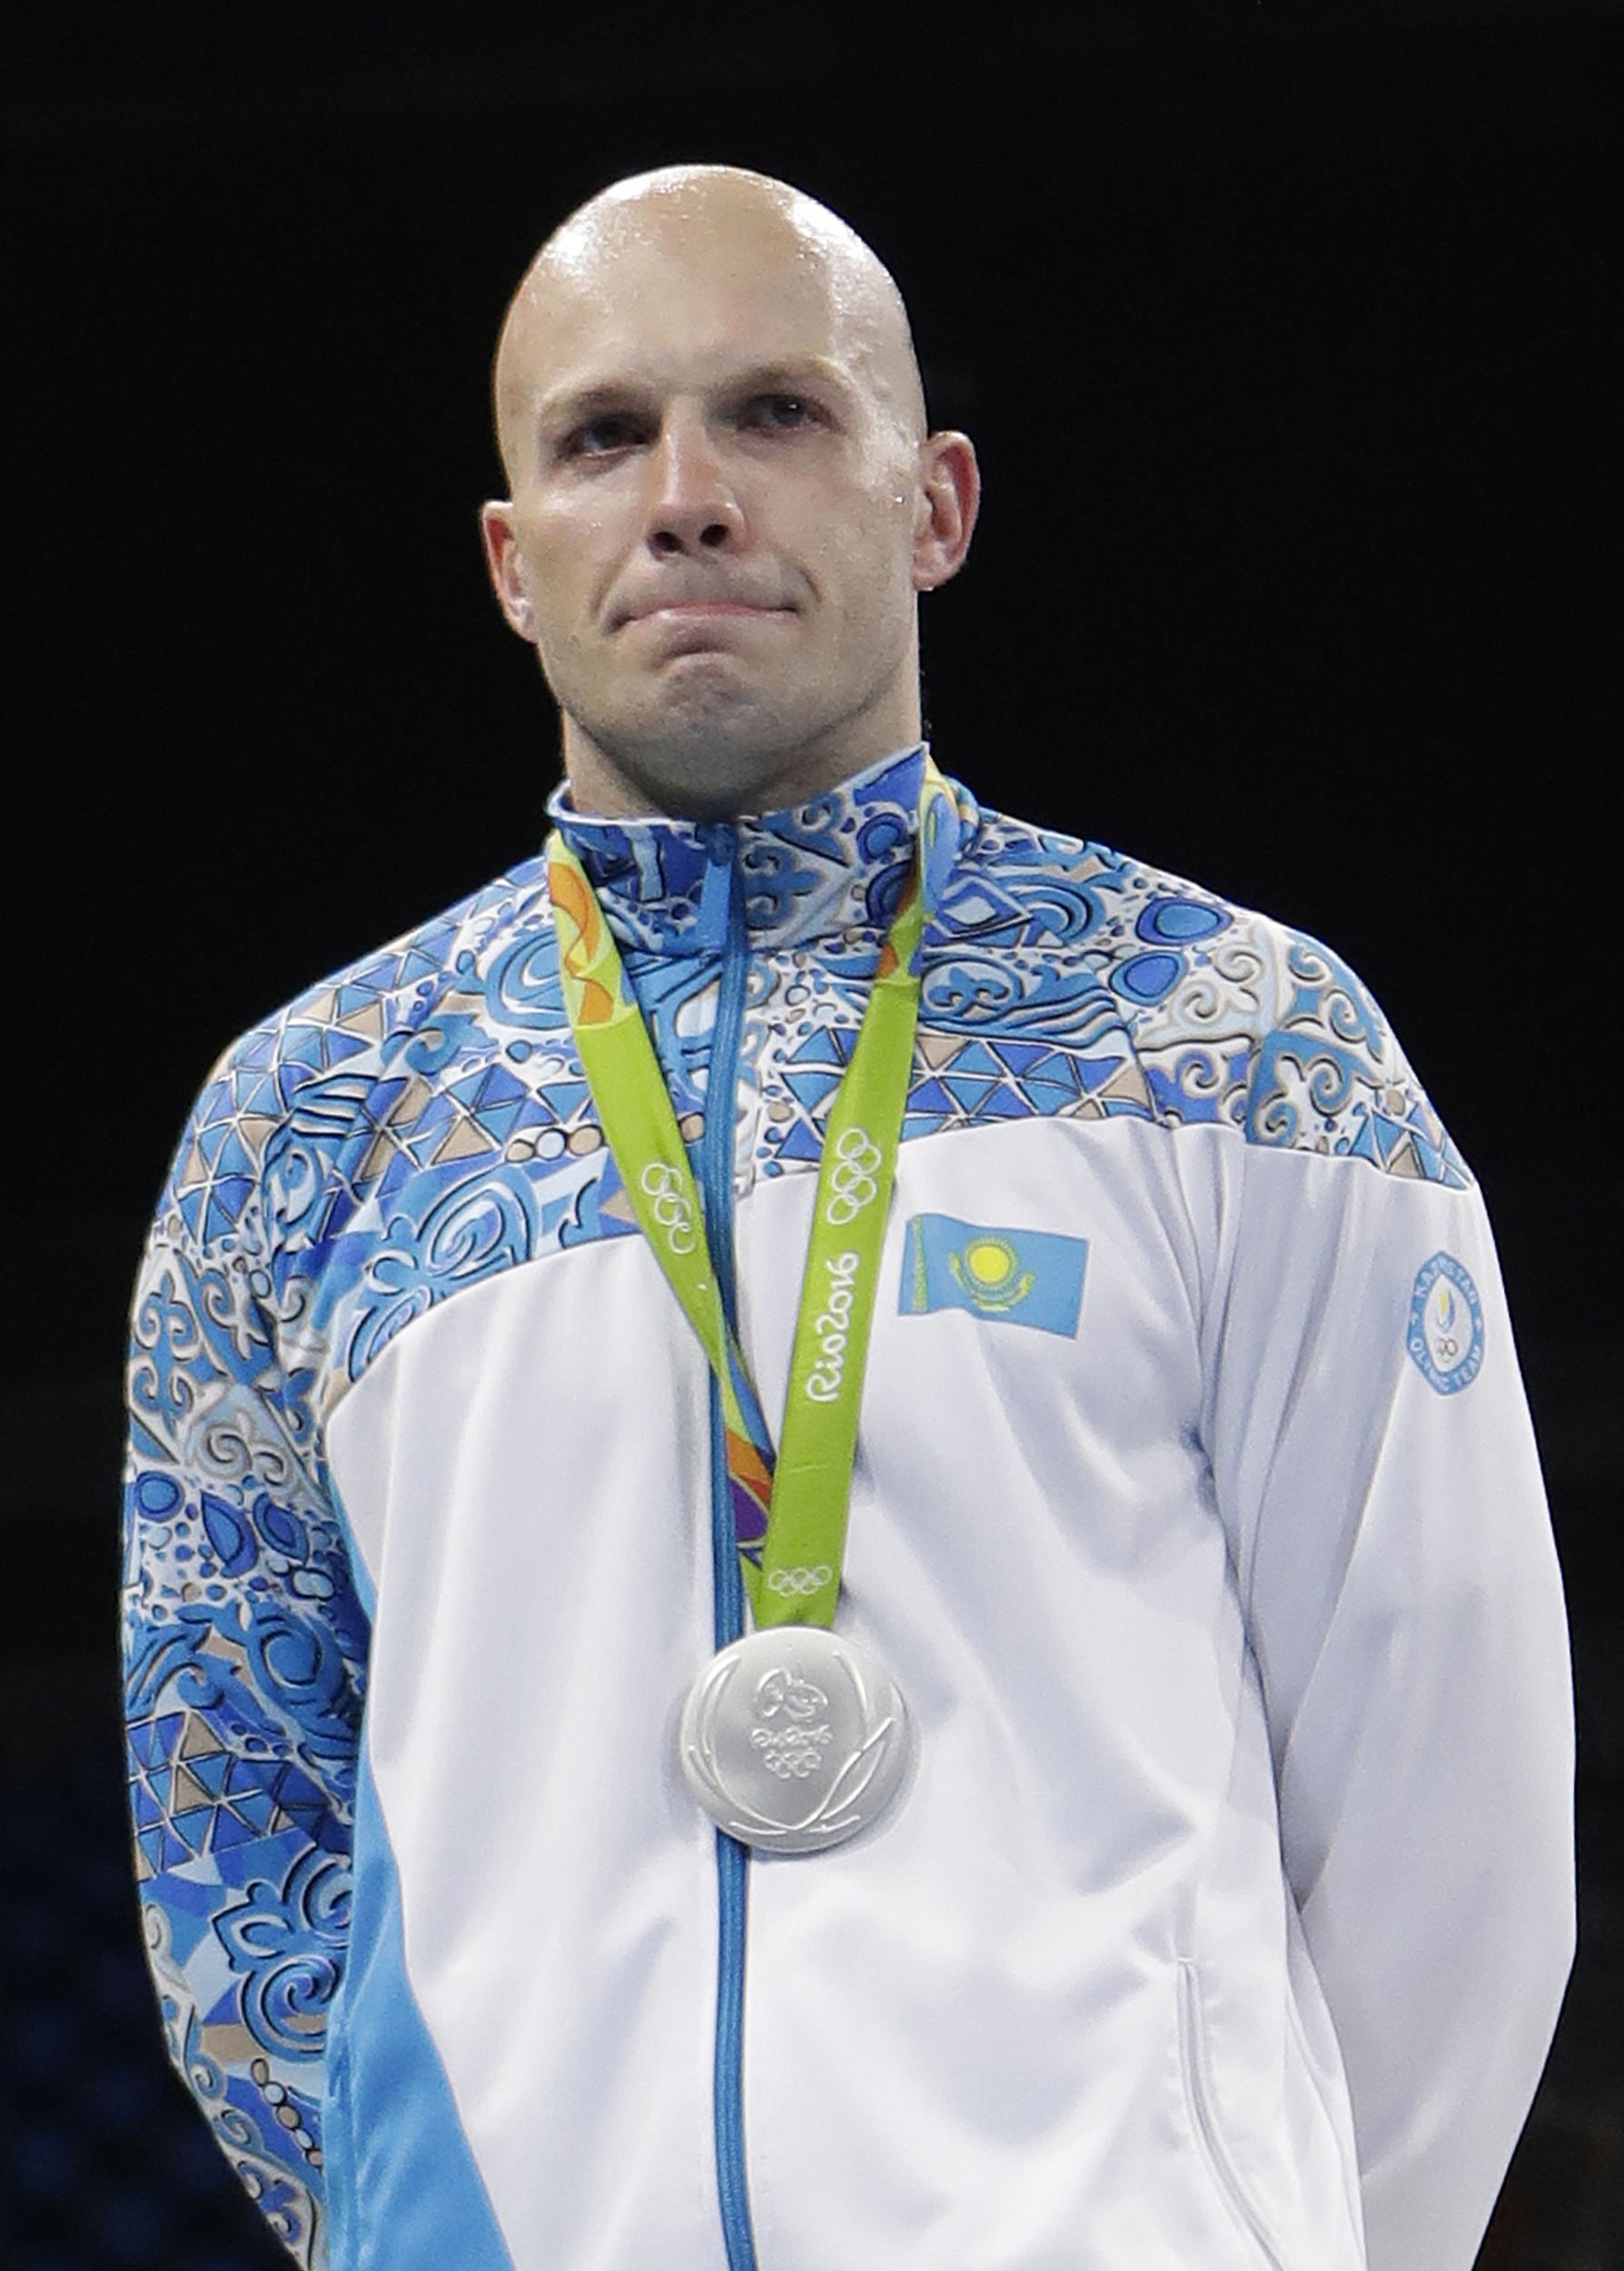 Kazakhstan's Vassiliy Levit displays his silver medal for the men's heavyweight 91-kg final boxing at the 2016 Summer Olympics in Rio de Janeiro, Brazil, Monday, Aug. 15, 2016. (AP Photo/Frank Franklin II)